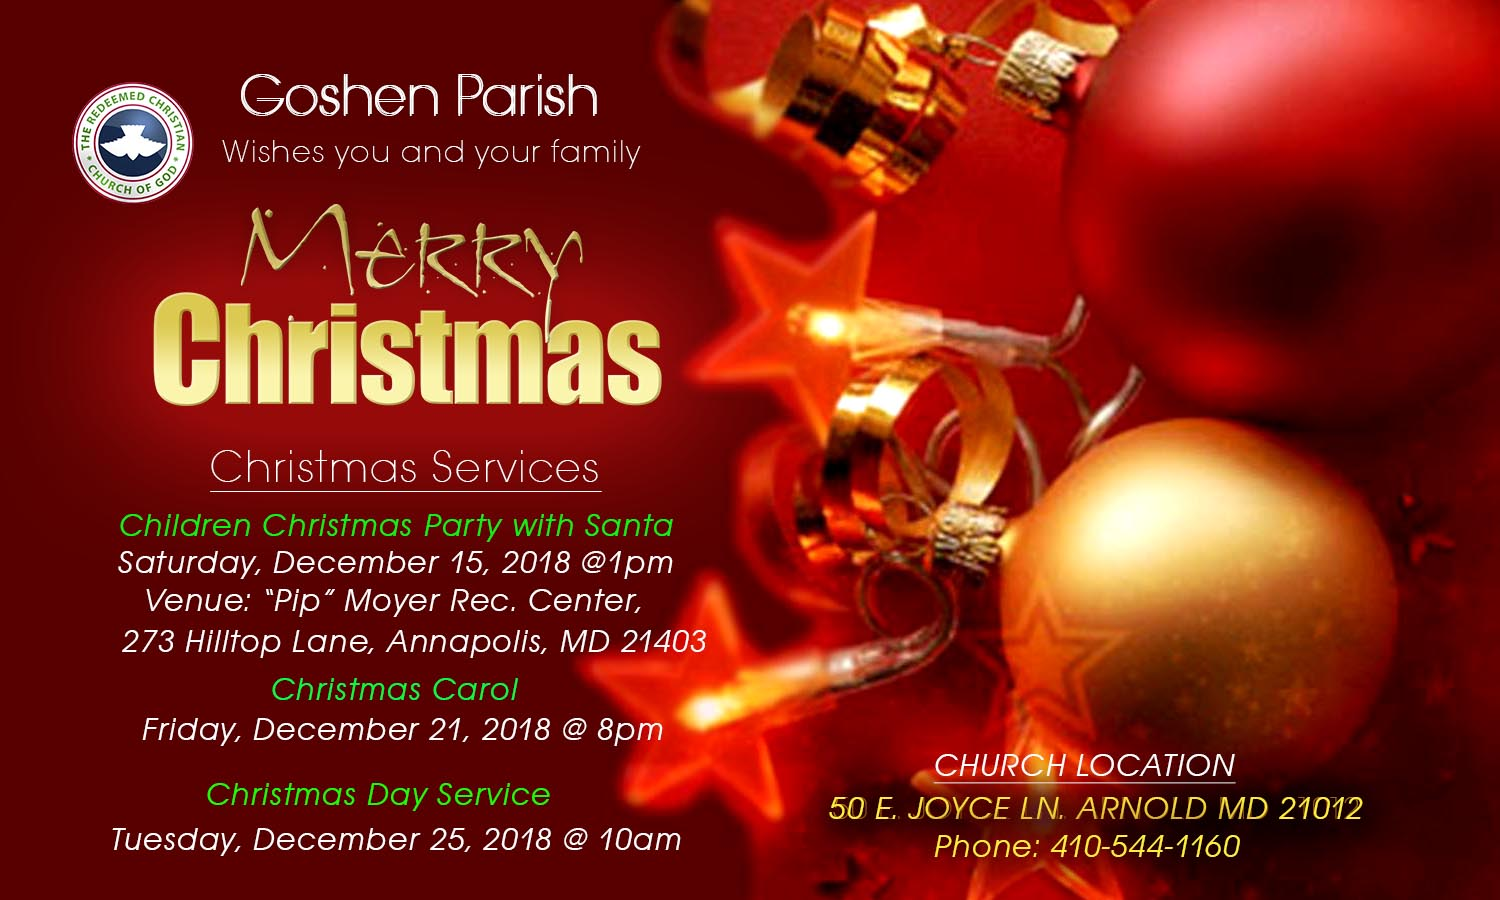 GOSHEN CHRISTMAS 2018 NEW